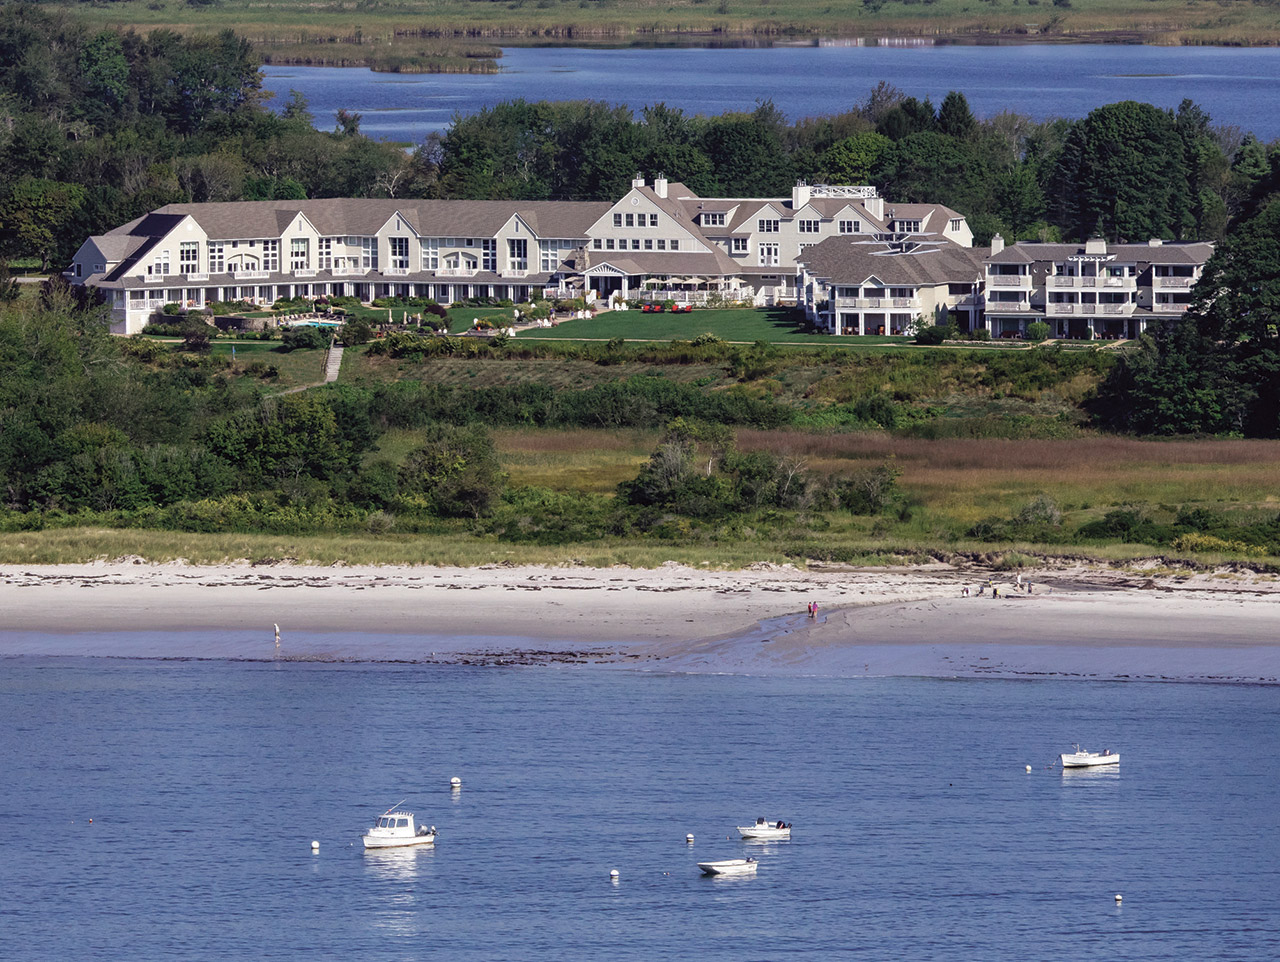 Inn by the Sea, Cape Elizabeth, ME